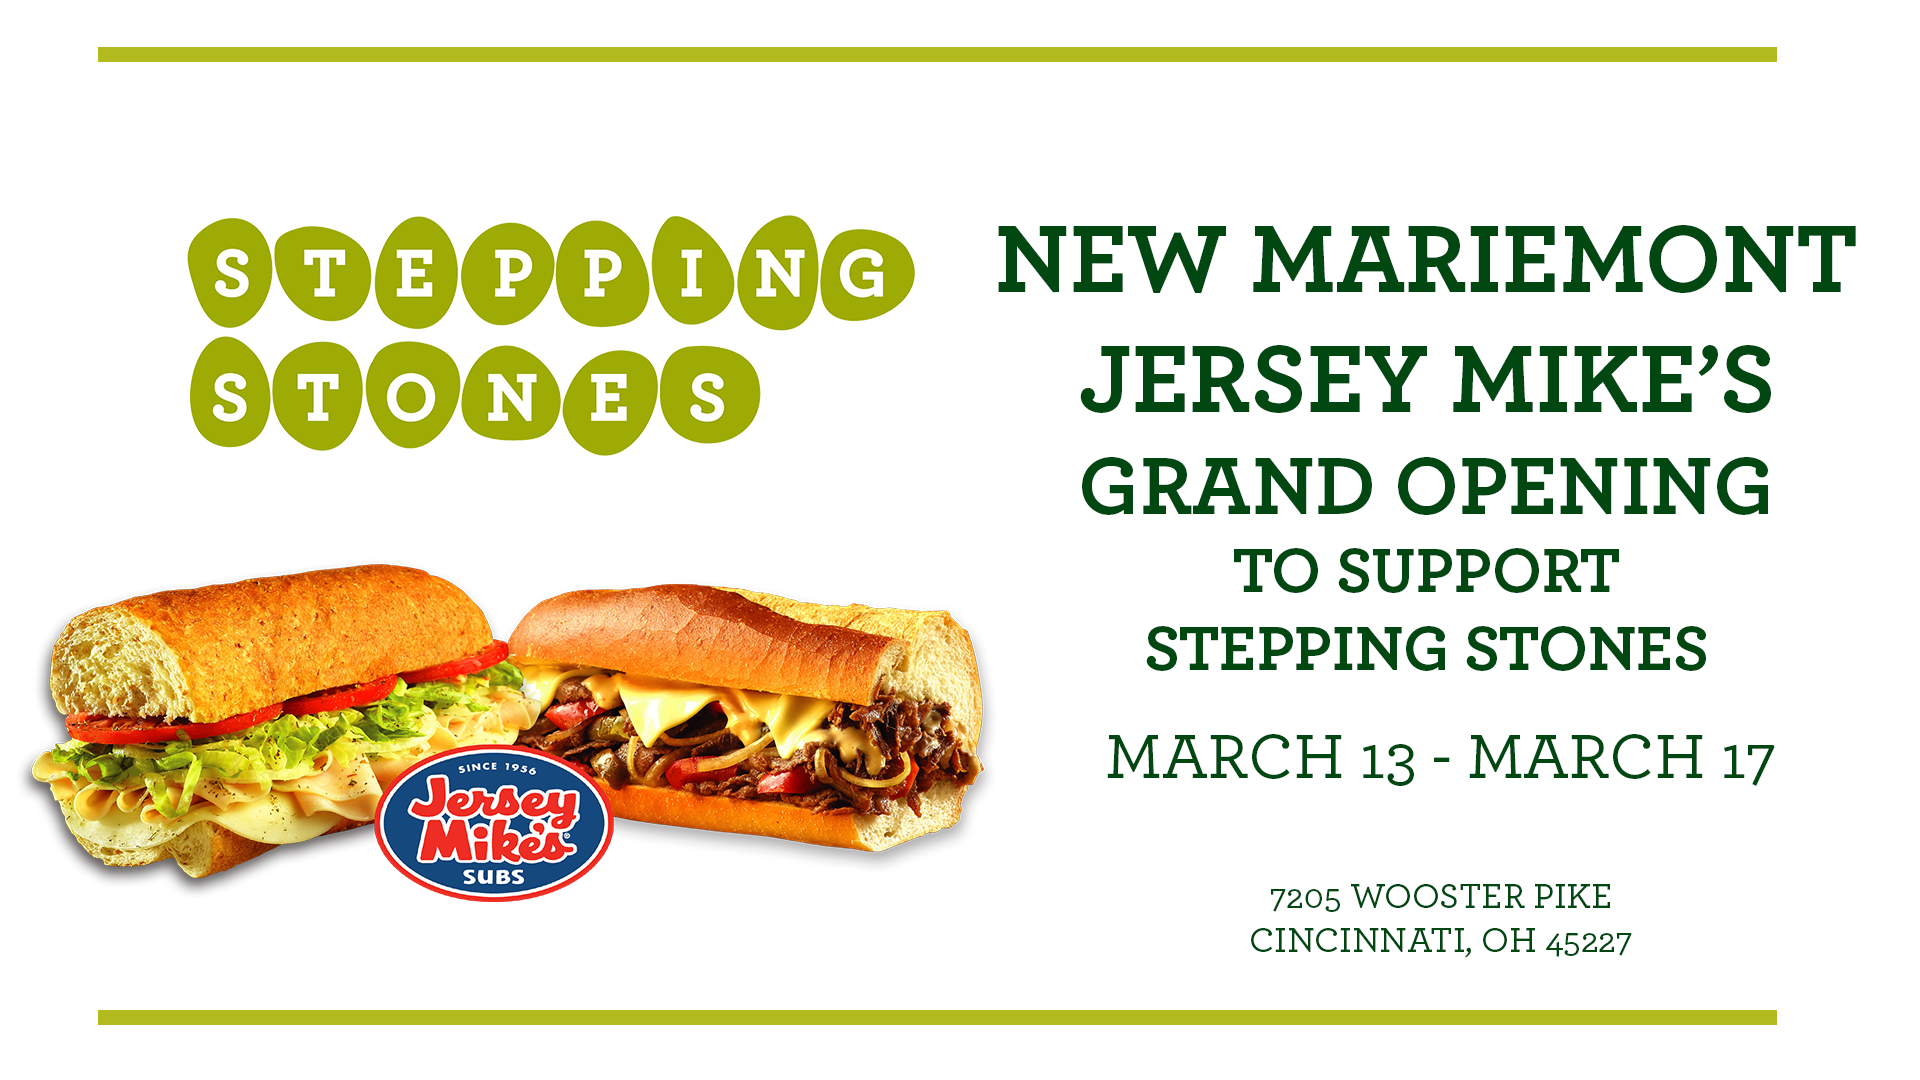 New Mariemont Jersey Mike's Grand Opening to Support Stepping Stones I Cincinnati, Ohio